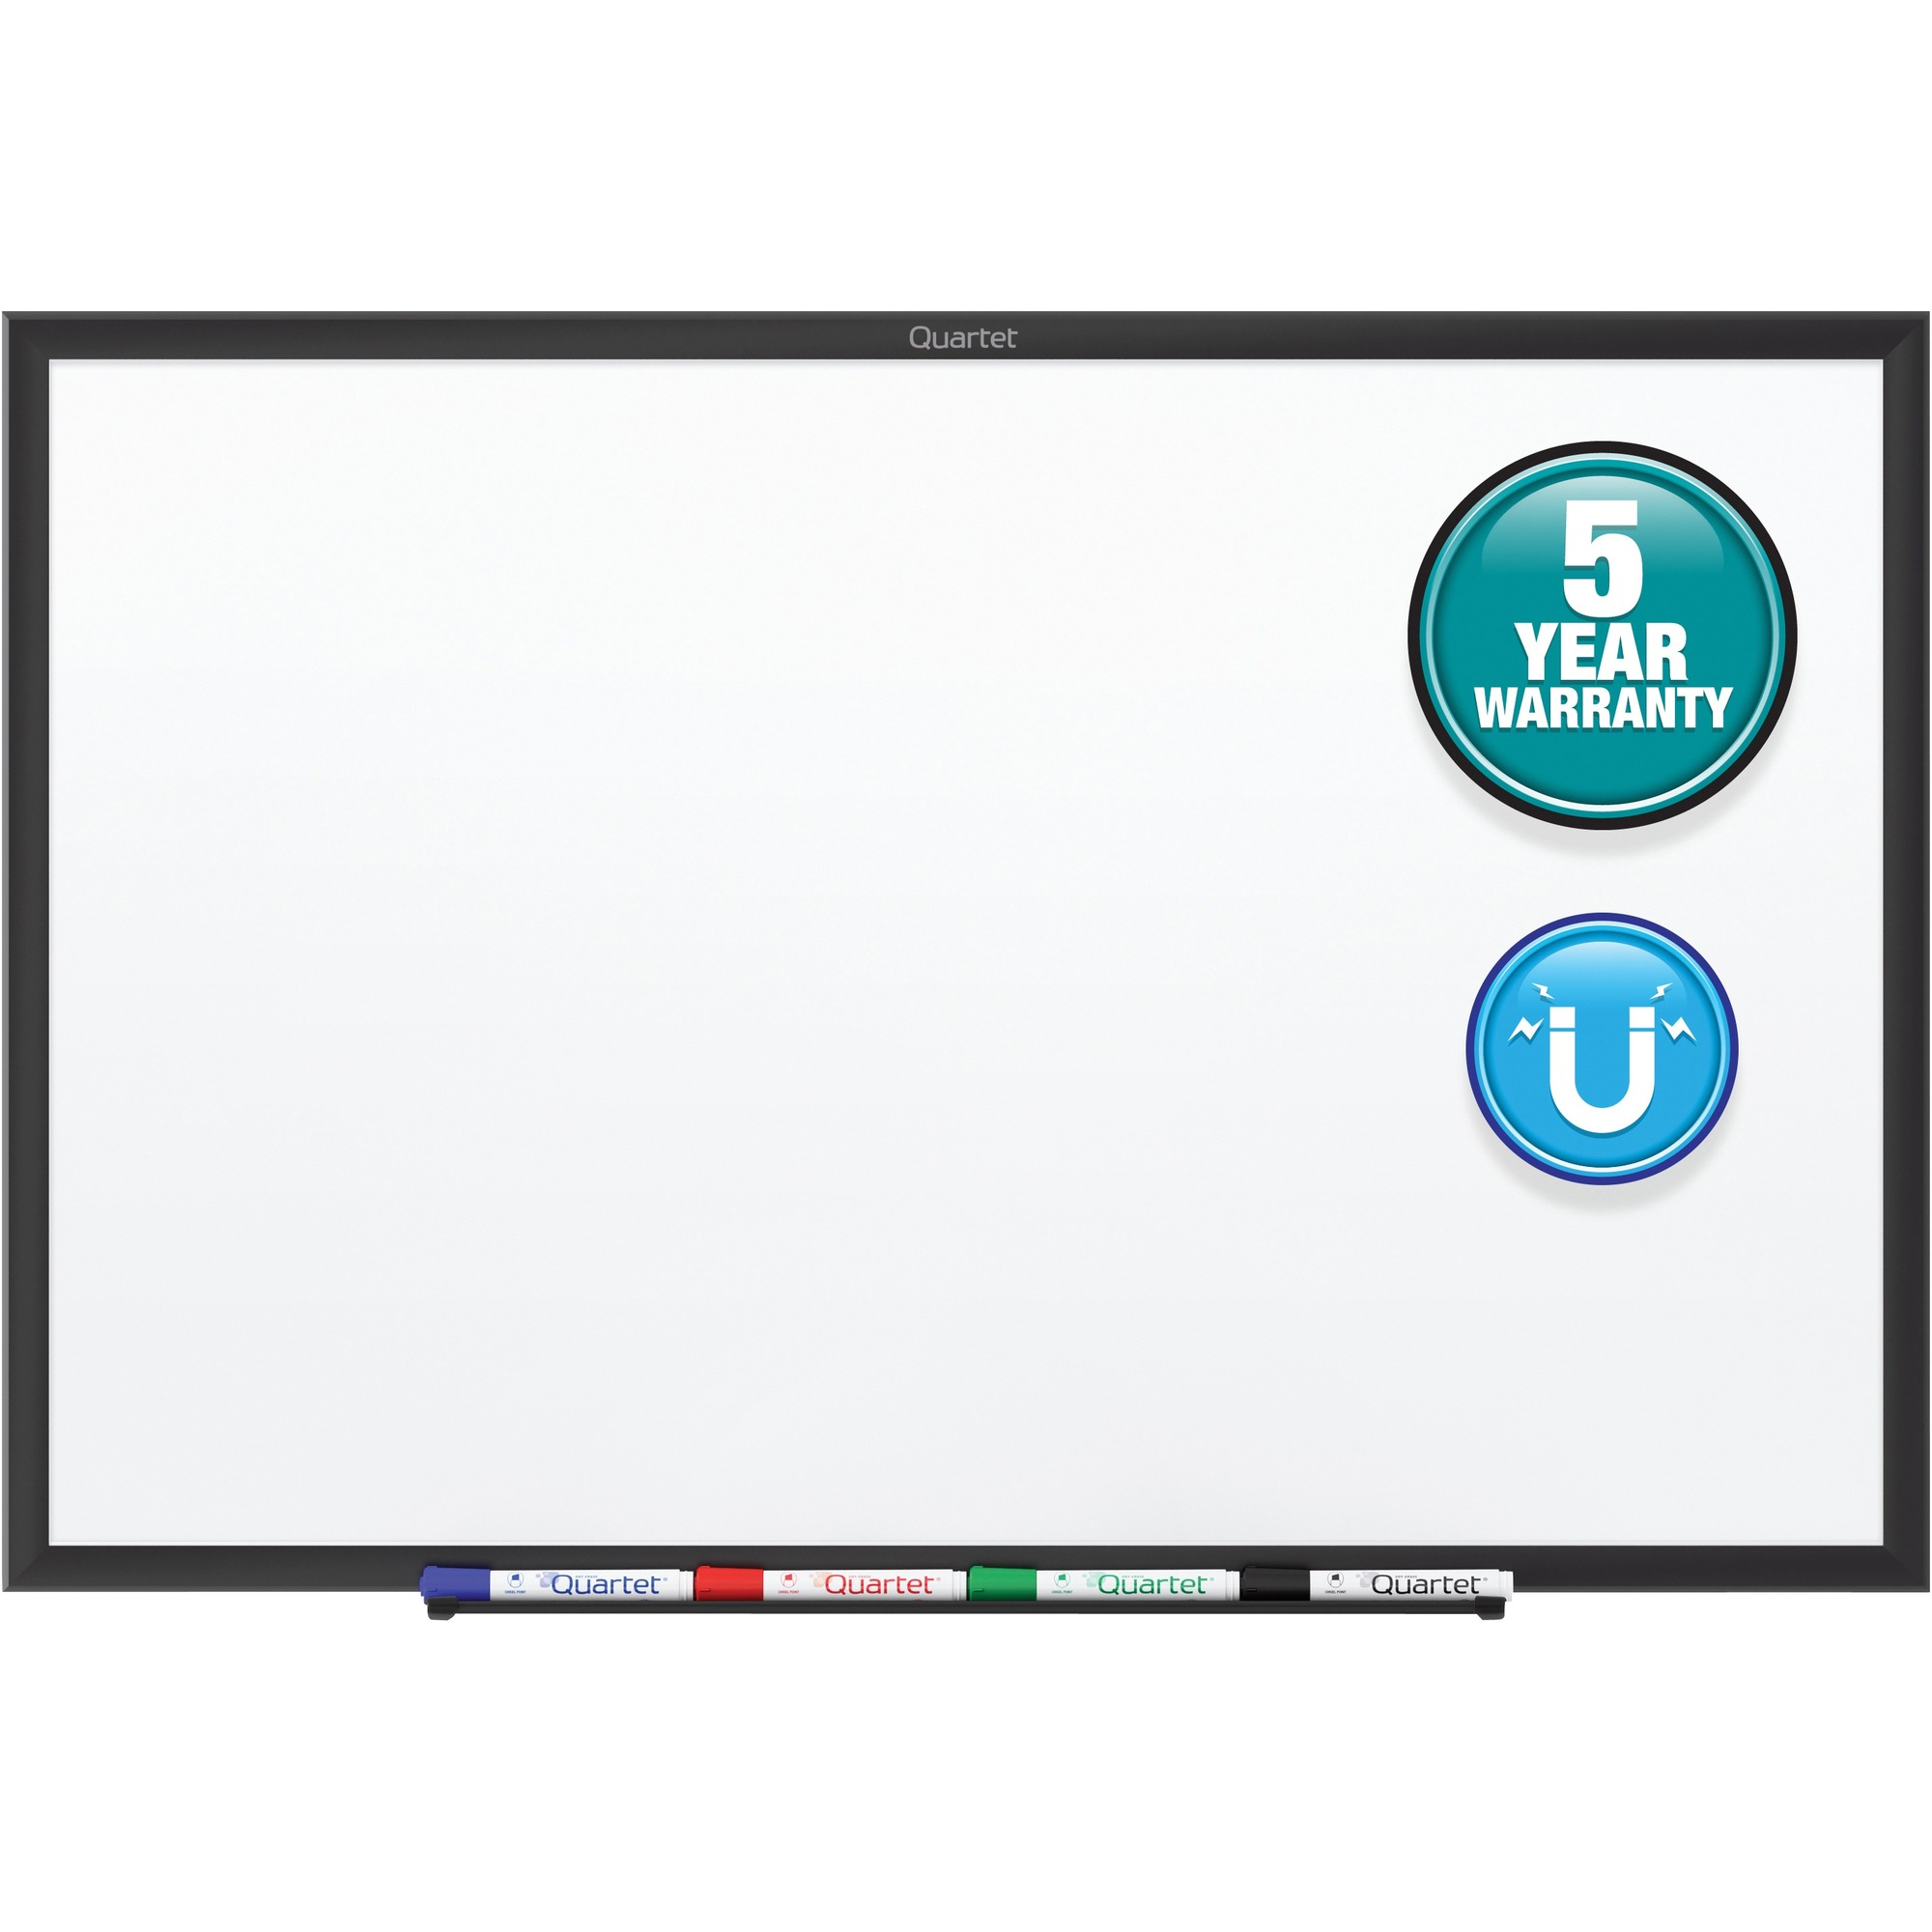 Acco Brands Corporation Quartet® Classic Magnetic Whiteboard - 36 (3 Ft) Width X 24 (2 Ft) Height - White Painted Steel Surface - Black Aluminum Frame - Horizontal/vertical - 1 Each